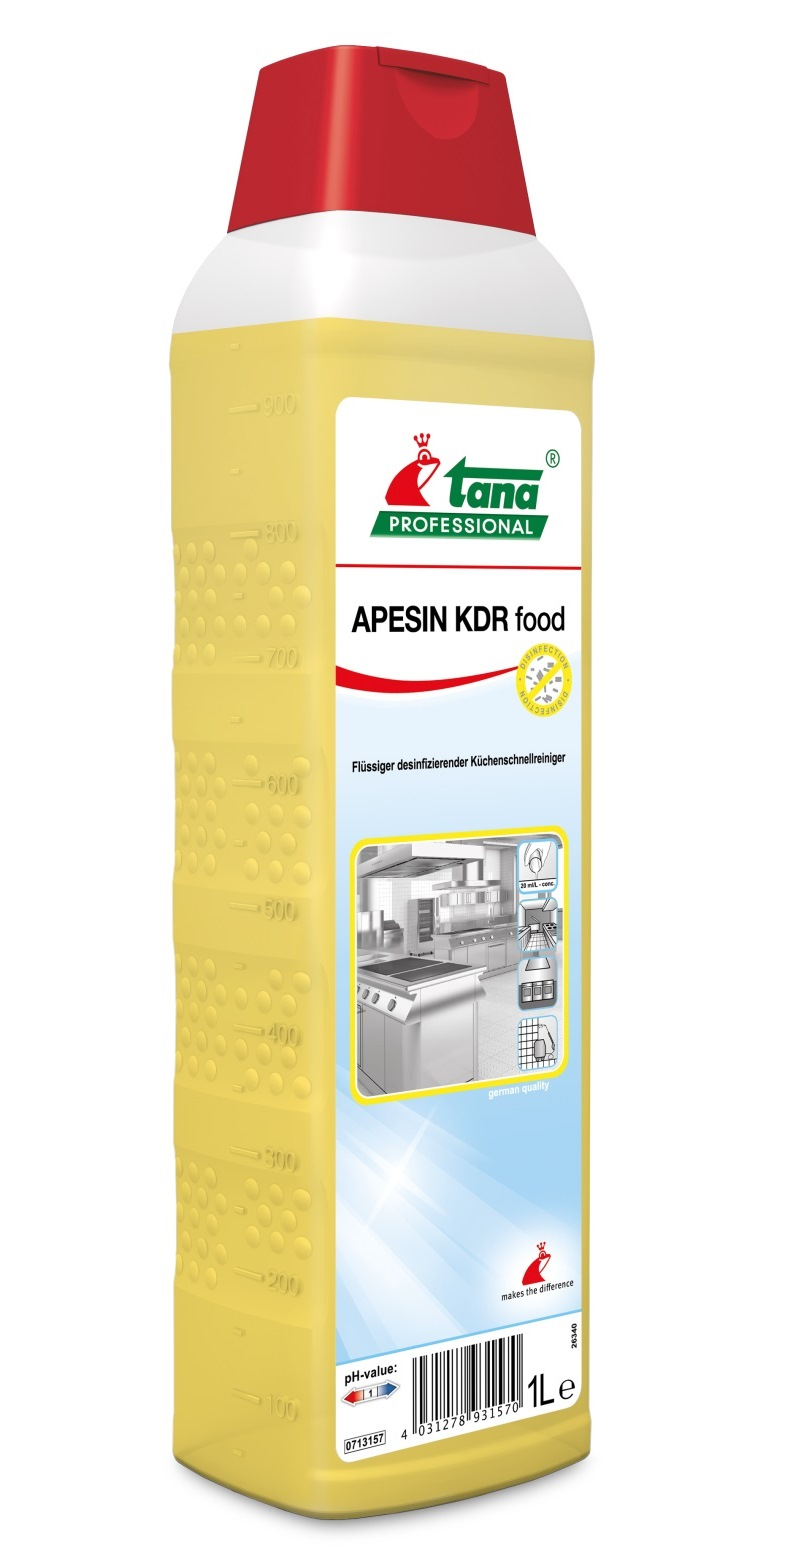 APESIN KDR food – дезинфектант за 